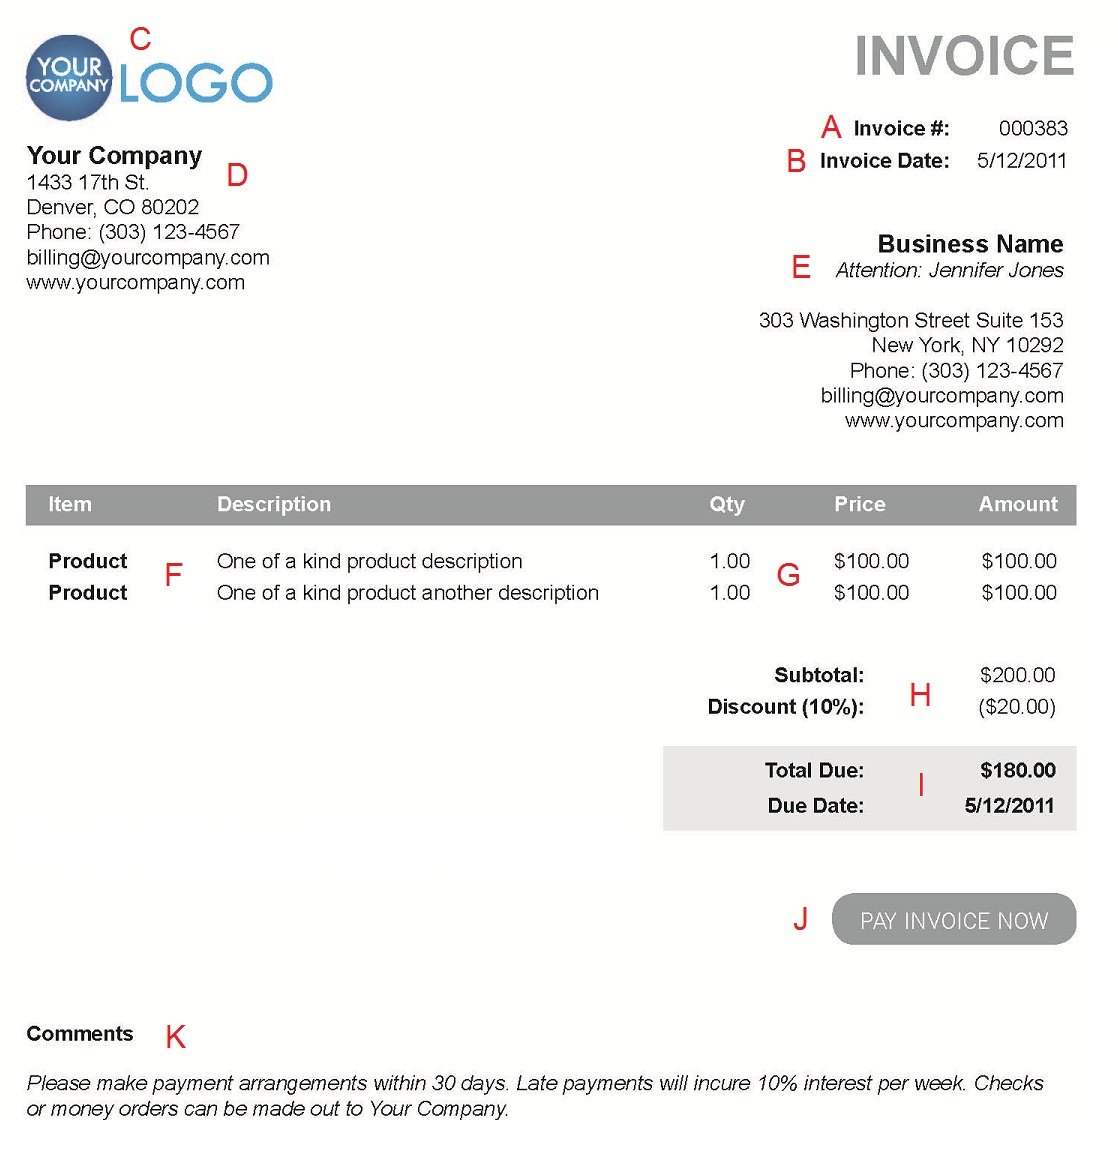 Coolmathgamesus  Marvellous The  Different Sections Of An Electronic Payment Invoice With Entrancing A  With Breathtaking Invoice Letter Also Online Invoice Maker In Addition Make Invoice Online And Invoice Booklet As Well As Zoho Invoicing Additionally Contractors Invoice From Paysimplecom With Coolmathgamesus  Entrancing The  Different Sections Of An Electronic Payment Invoice With Breathtaking A  And Marvellous Invoice Letter Also Online Invoice Maker In Addition Make Invoice Online From Paysimplecom